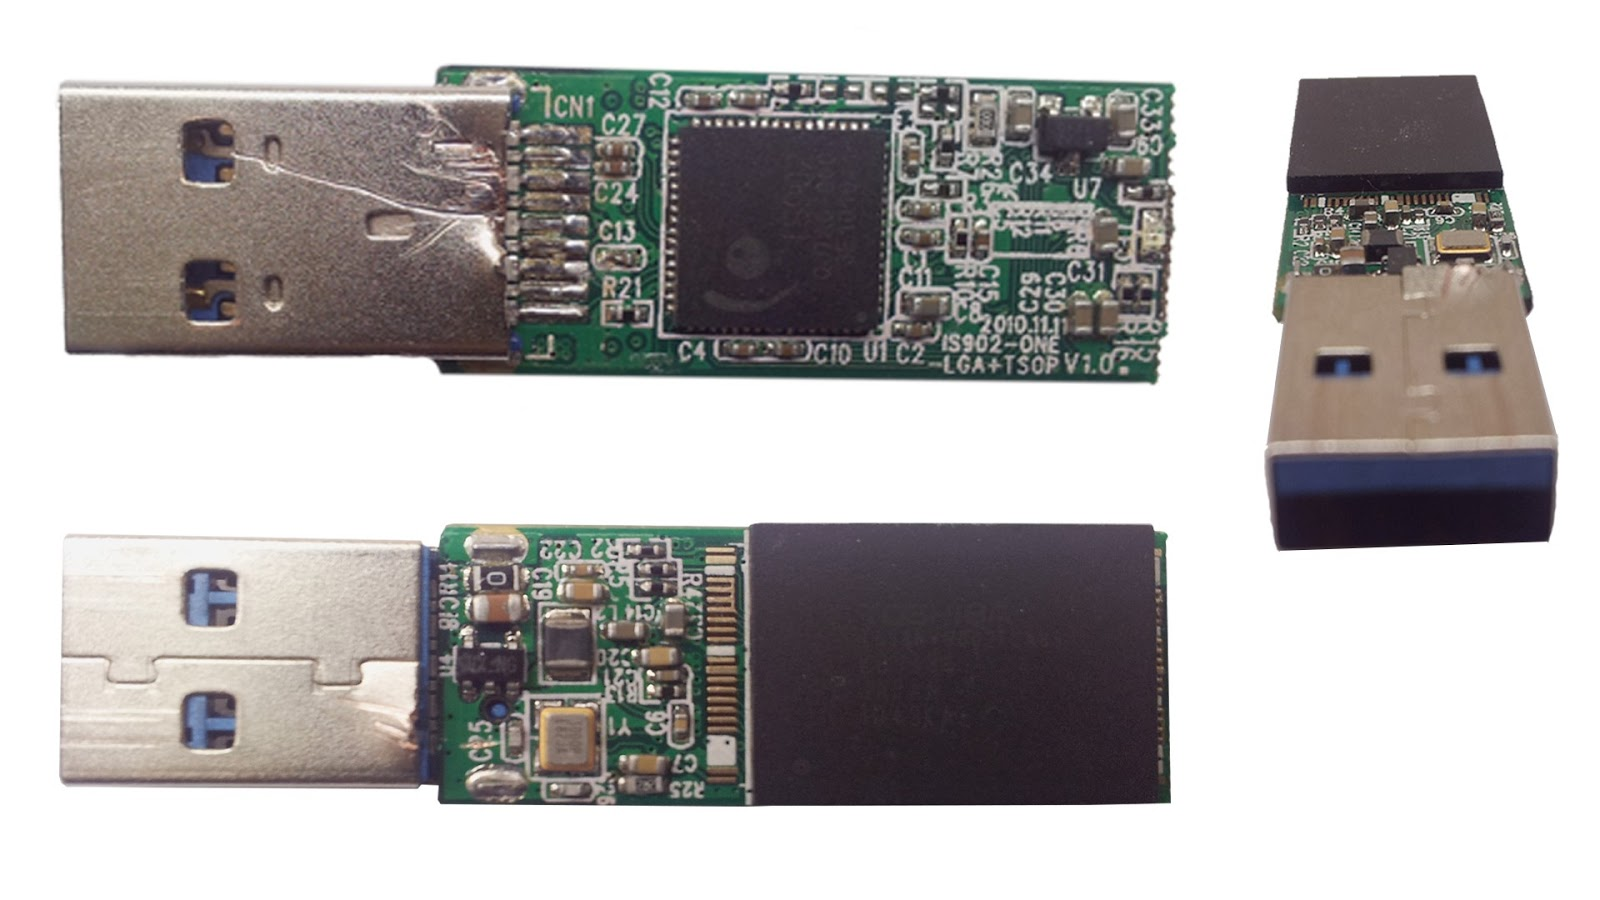 Storage Devices An Essential Part Of Computer System Erasable Programmable Readonly Memory Integrated Circuits These Pen Drive Uses Flash Which Is A Type Eeprom Chip Electronically Read Only Works On Nand Gate It Makes Drives